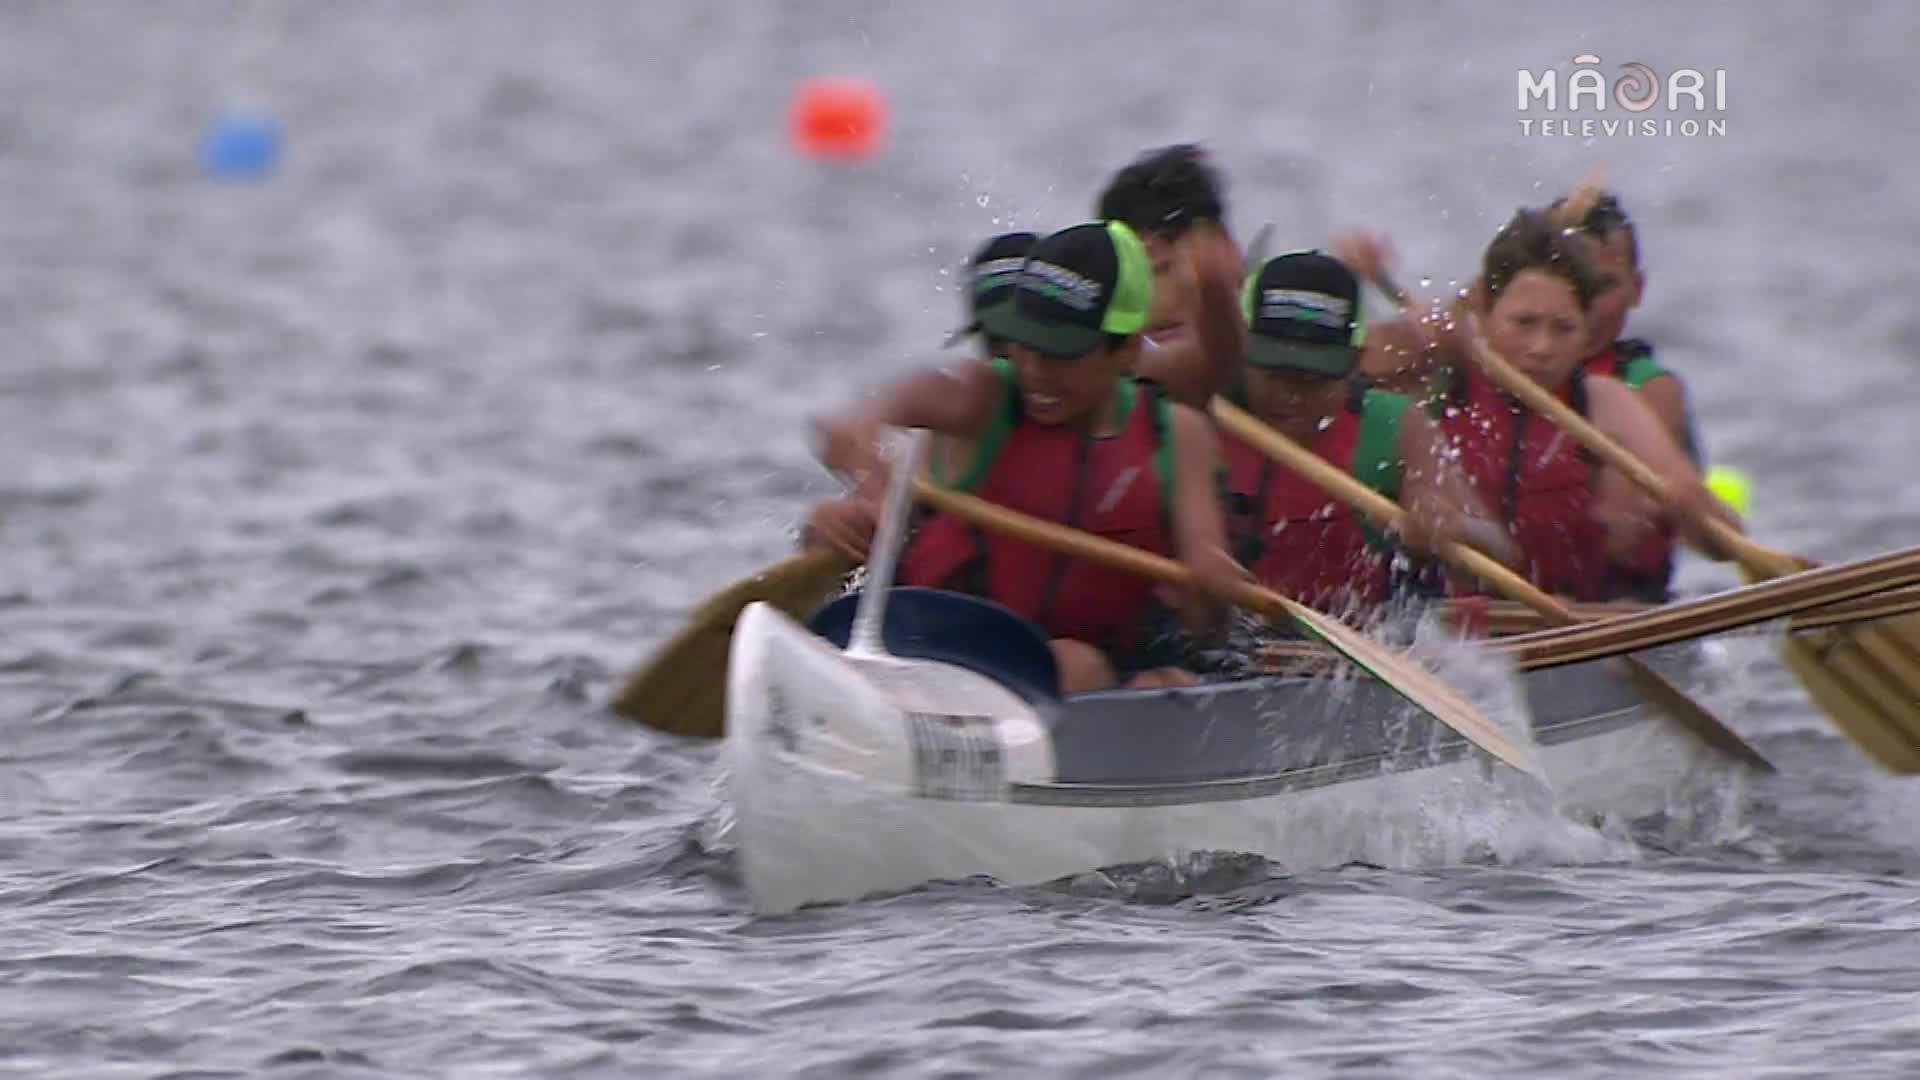 Video for Waka Ama Sprints 2018, Series 6 Episode 3